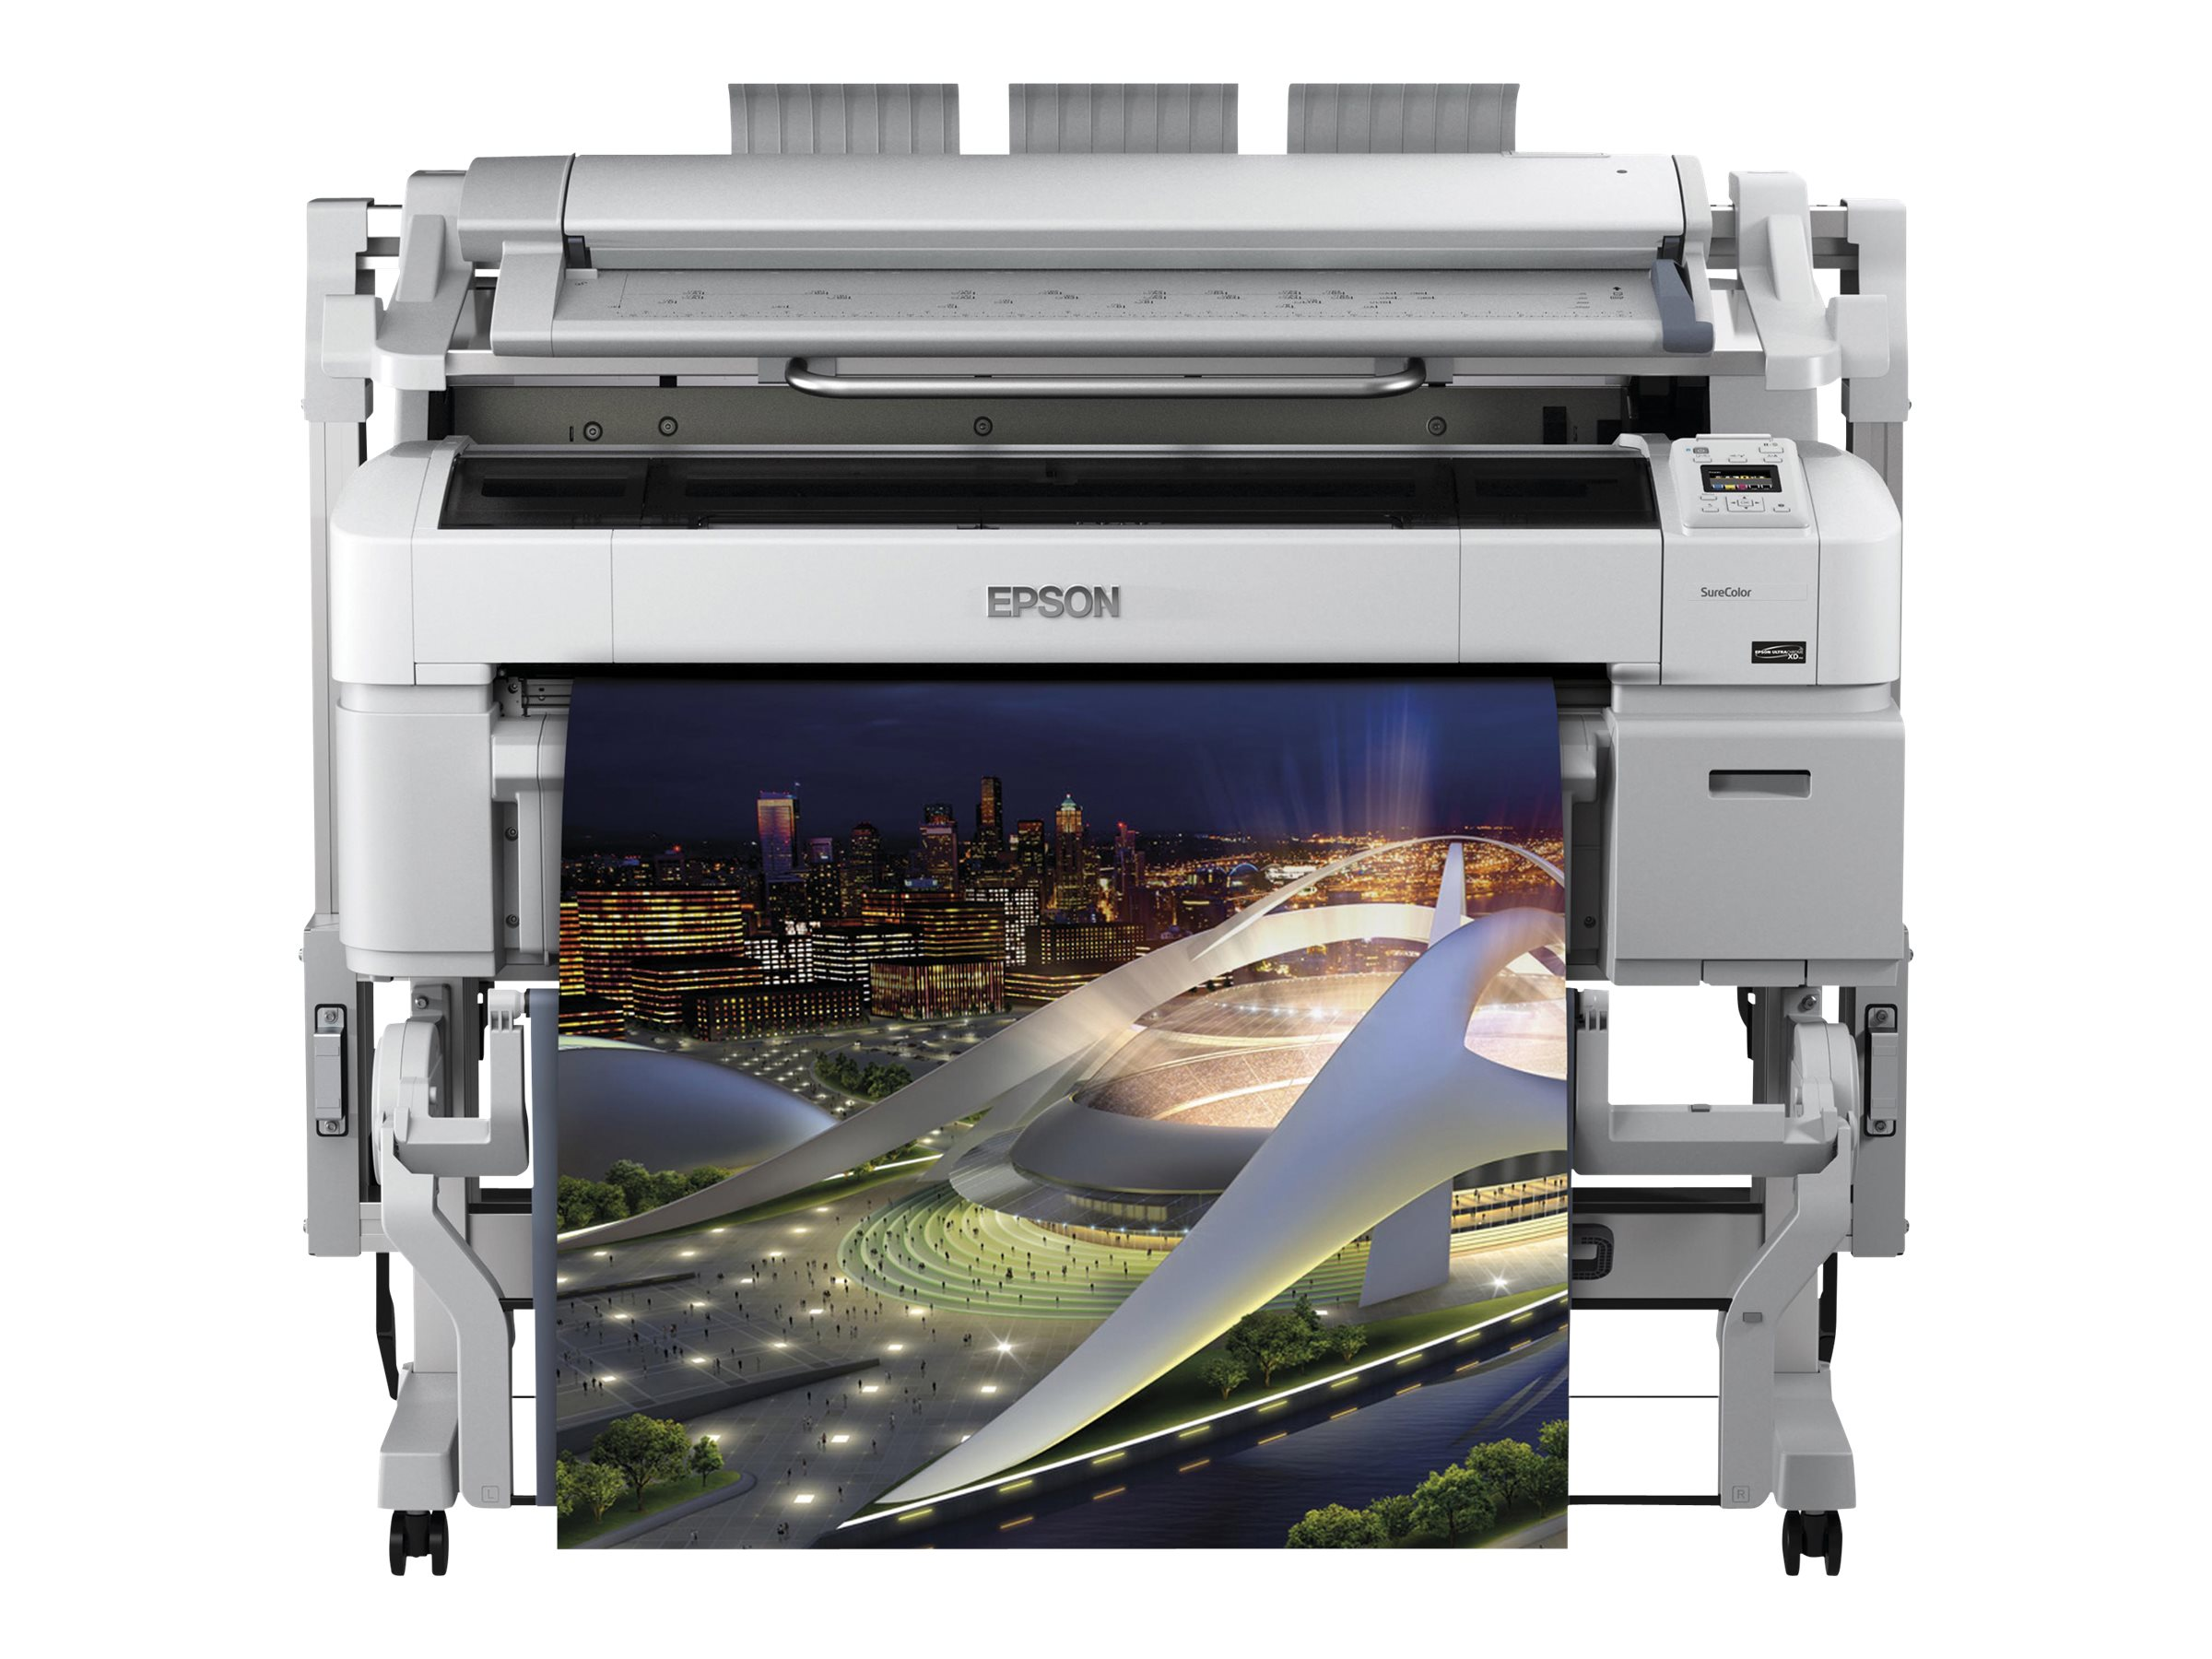 Epson SureColor T5270 Printer - $3995 less instant rebate of $750.00